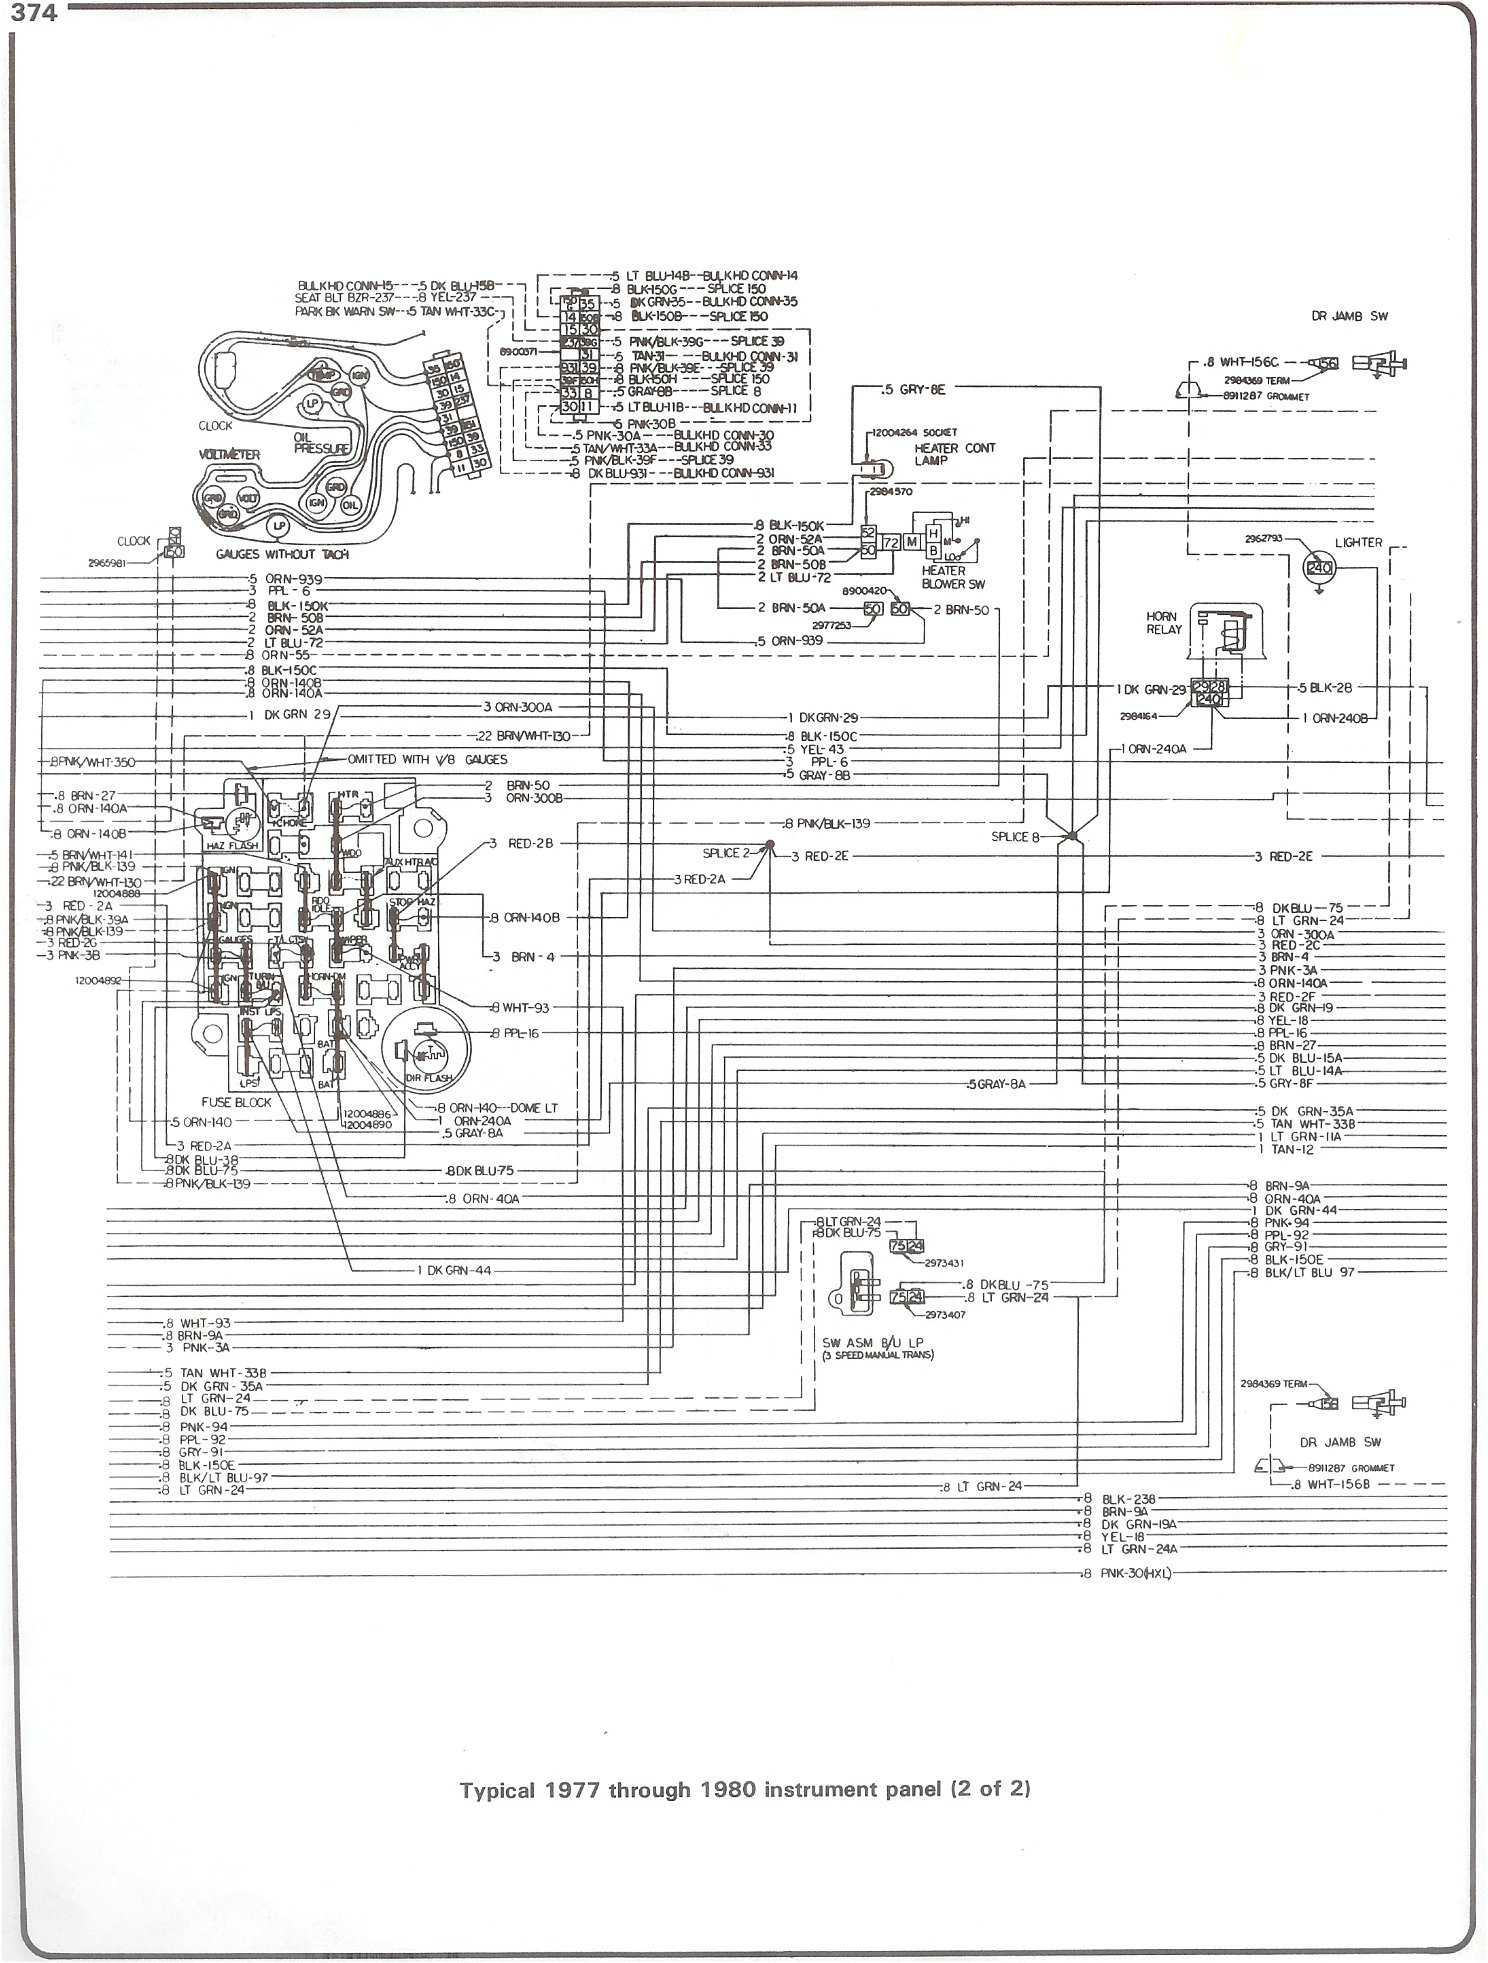 77 80_instrument_pg2 1978 chevy truck wiring diagram chevy malibu ignition wiring 1978 chevy truck fuse box diagram at edmiracle.co